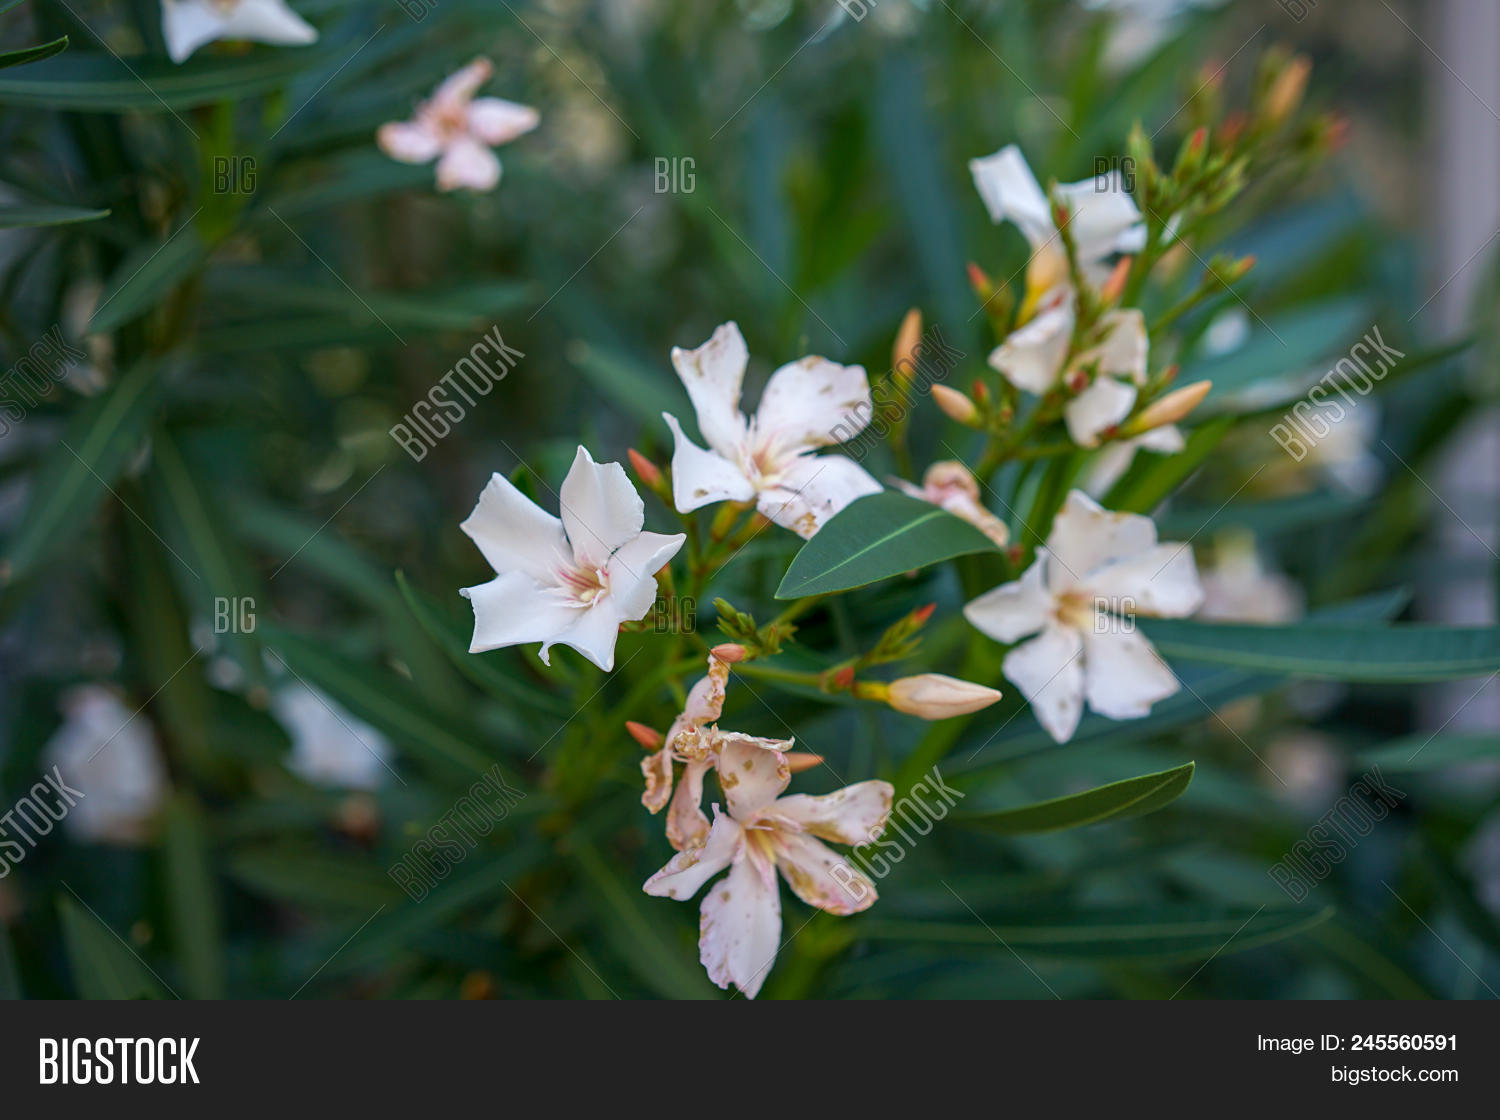 White oleander flowers image photo free trial bigstock white oleander flowers nerium oleander from the mediterranean sea area mightylinksfo